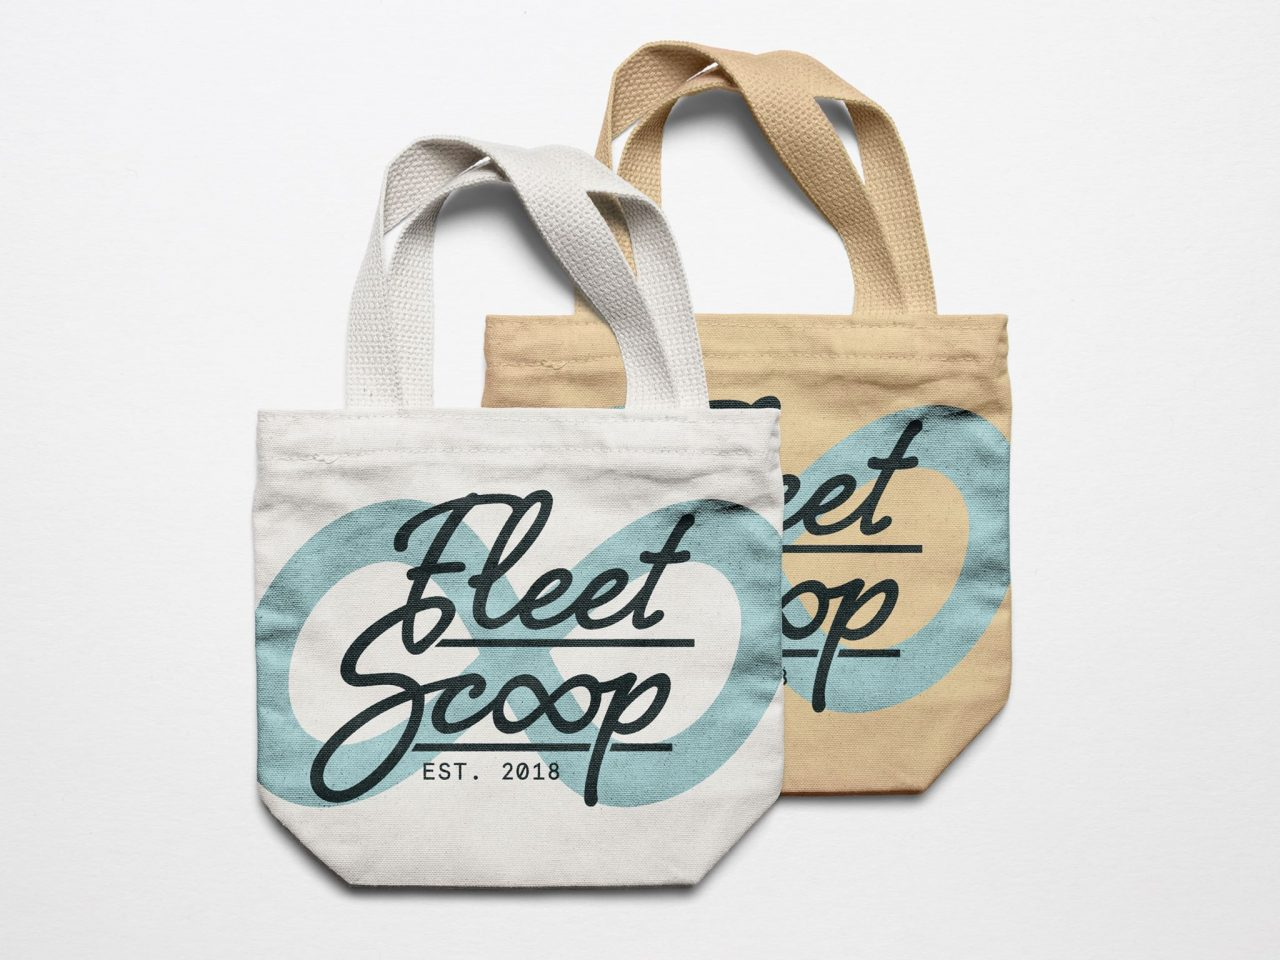 Scoop Refill Shop Fleet